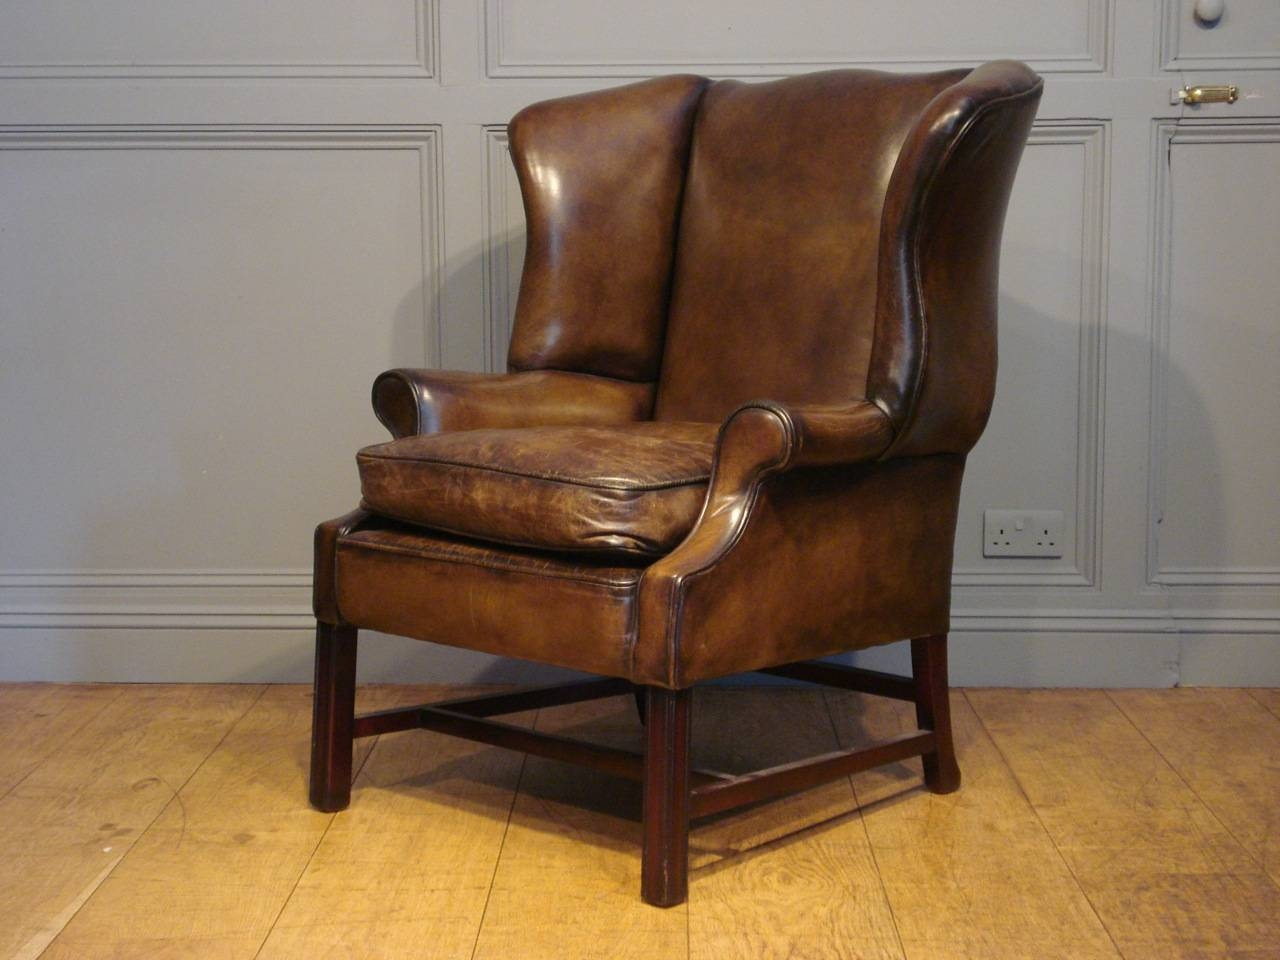 Winged Leather Armchair in Vintage Leather Armchairs (Image 30 of 30)